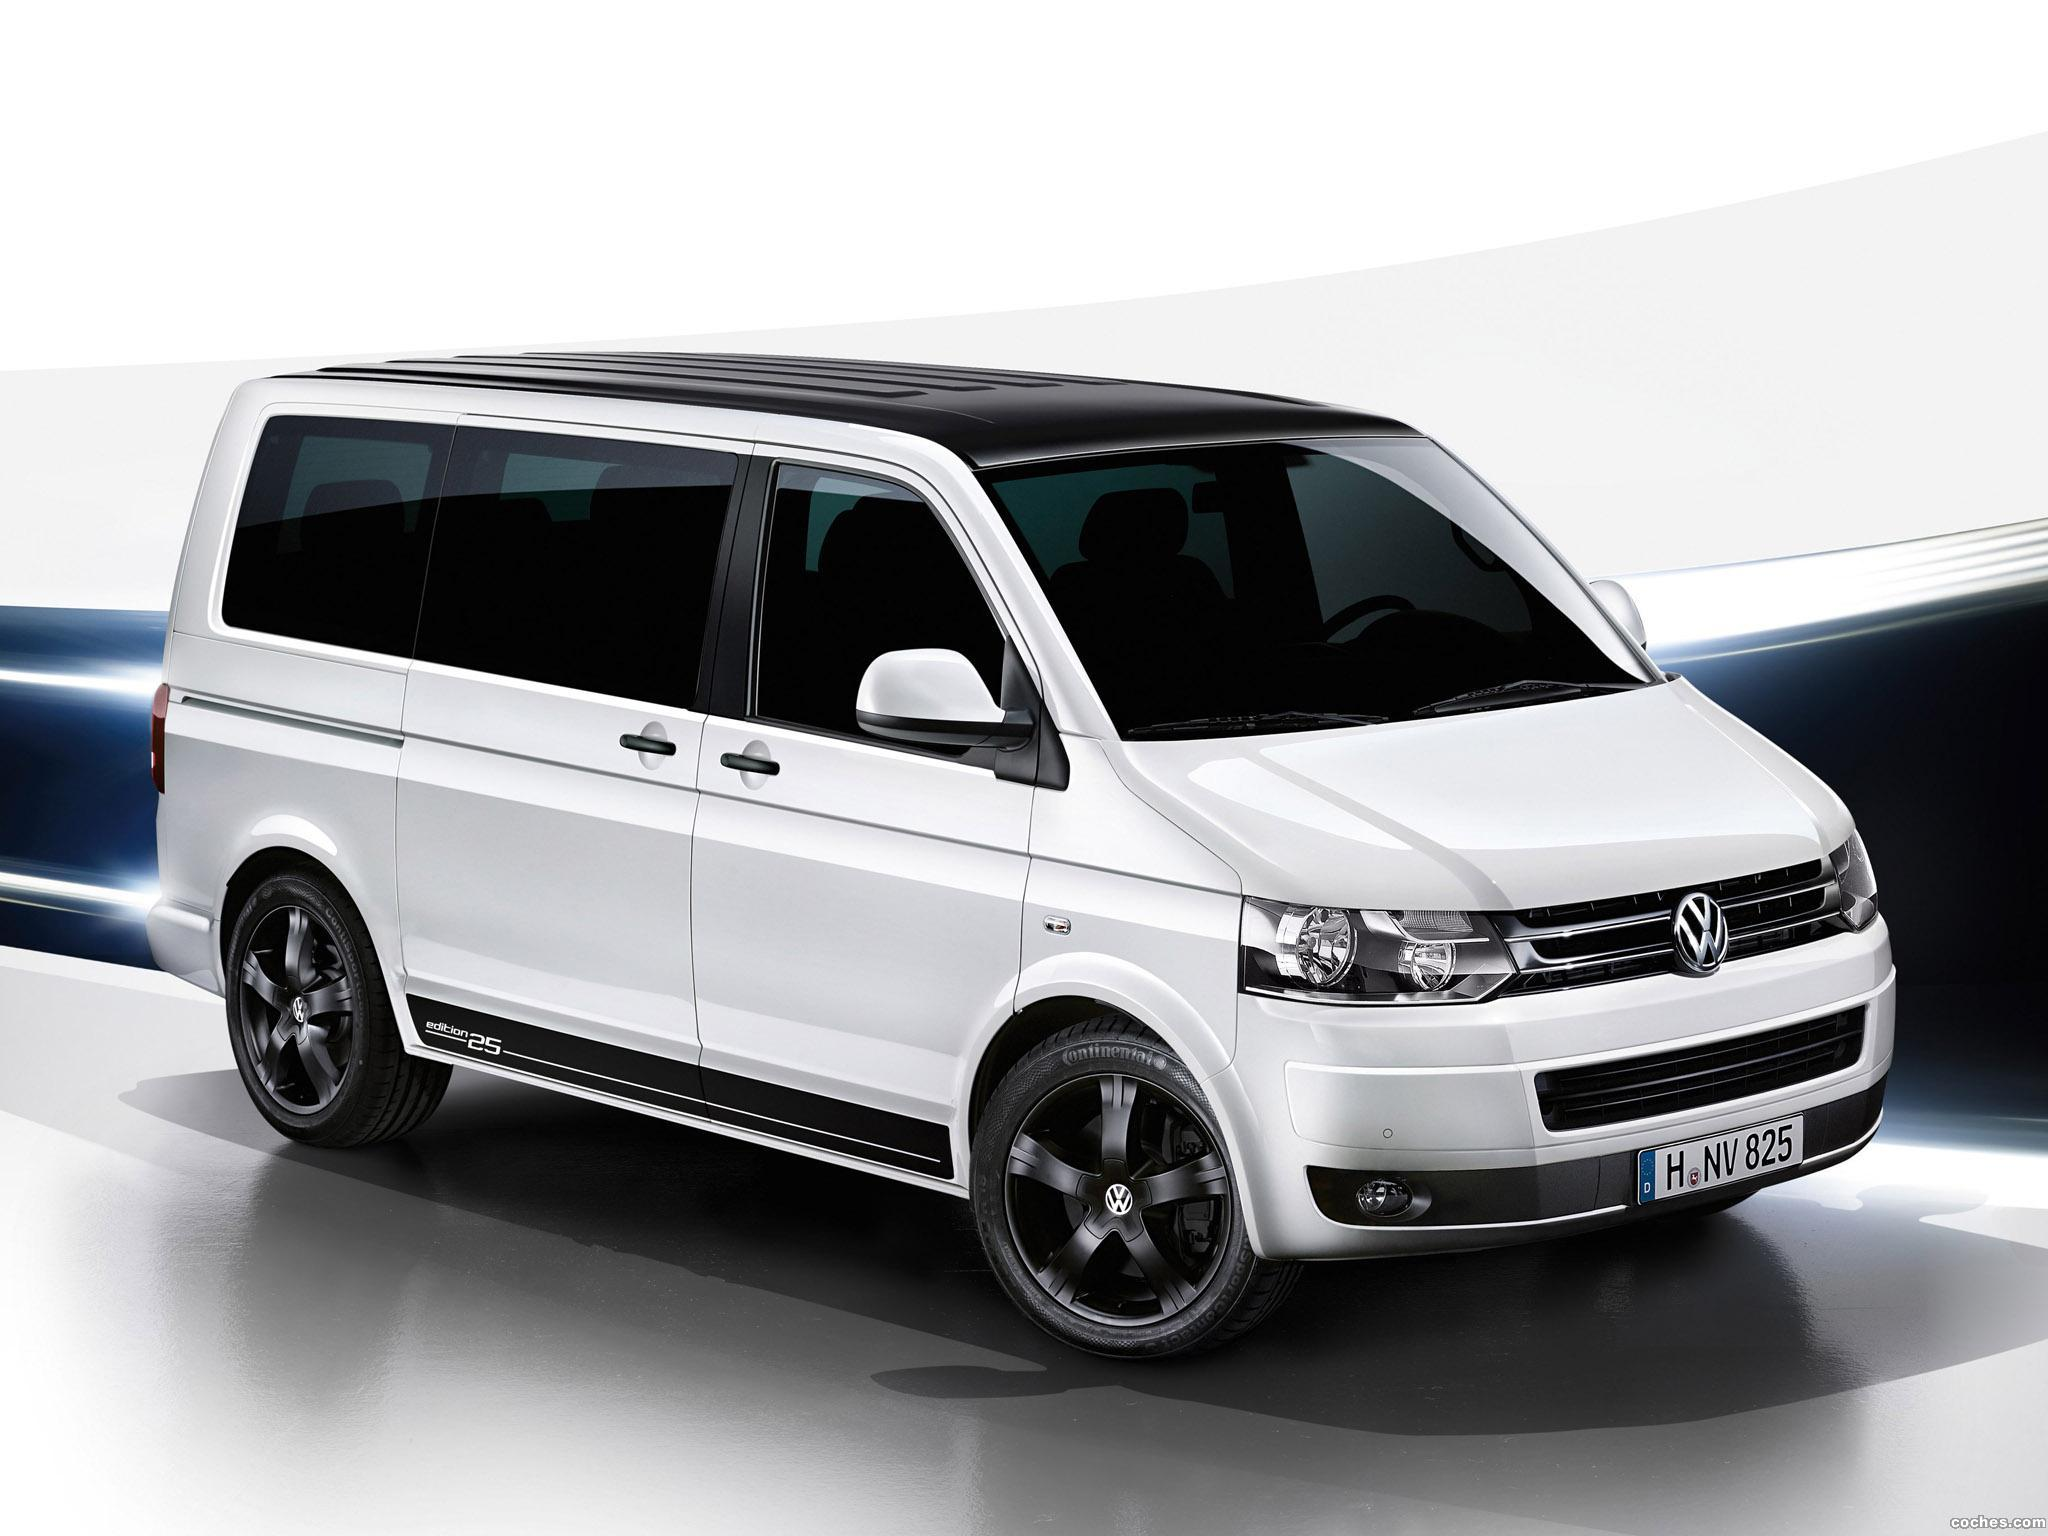 fotos de volkswagen transporter t5 multivan edition 25 2010. Black Bedroom Furniture Sets. Home Design Ideas